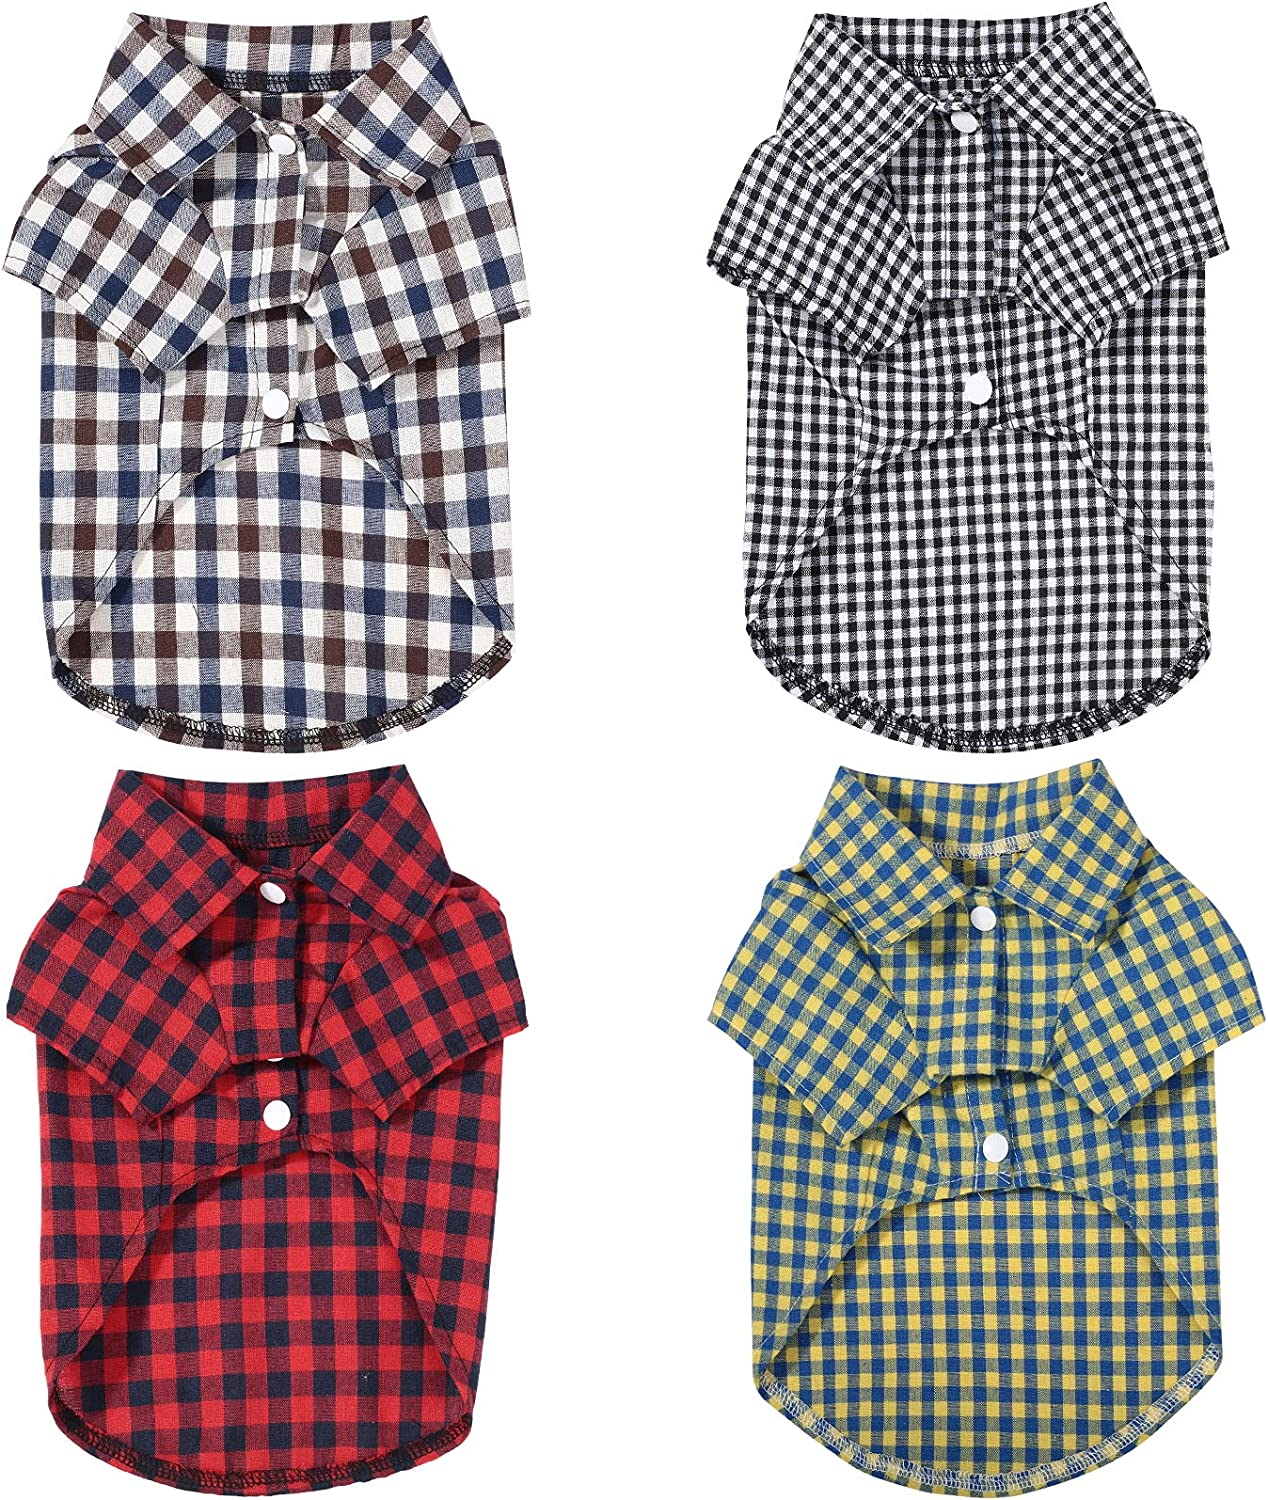 4 Pieces Dog Plaid Shirt Breathable Clothes Cat Max 45% OFF Mail order cheap T-Shirts Pet